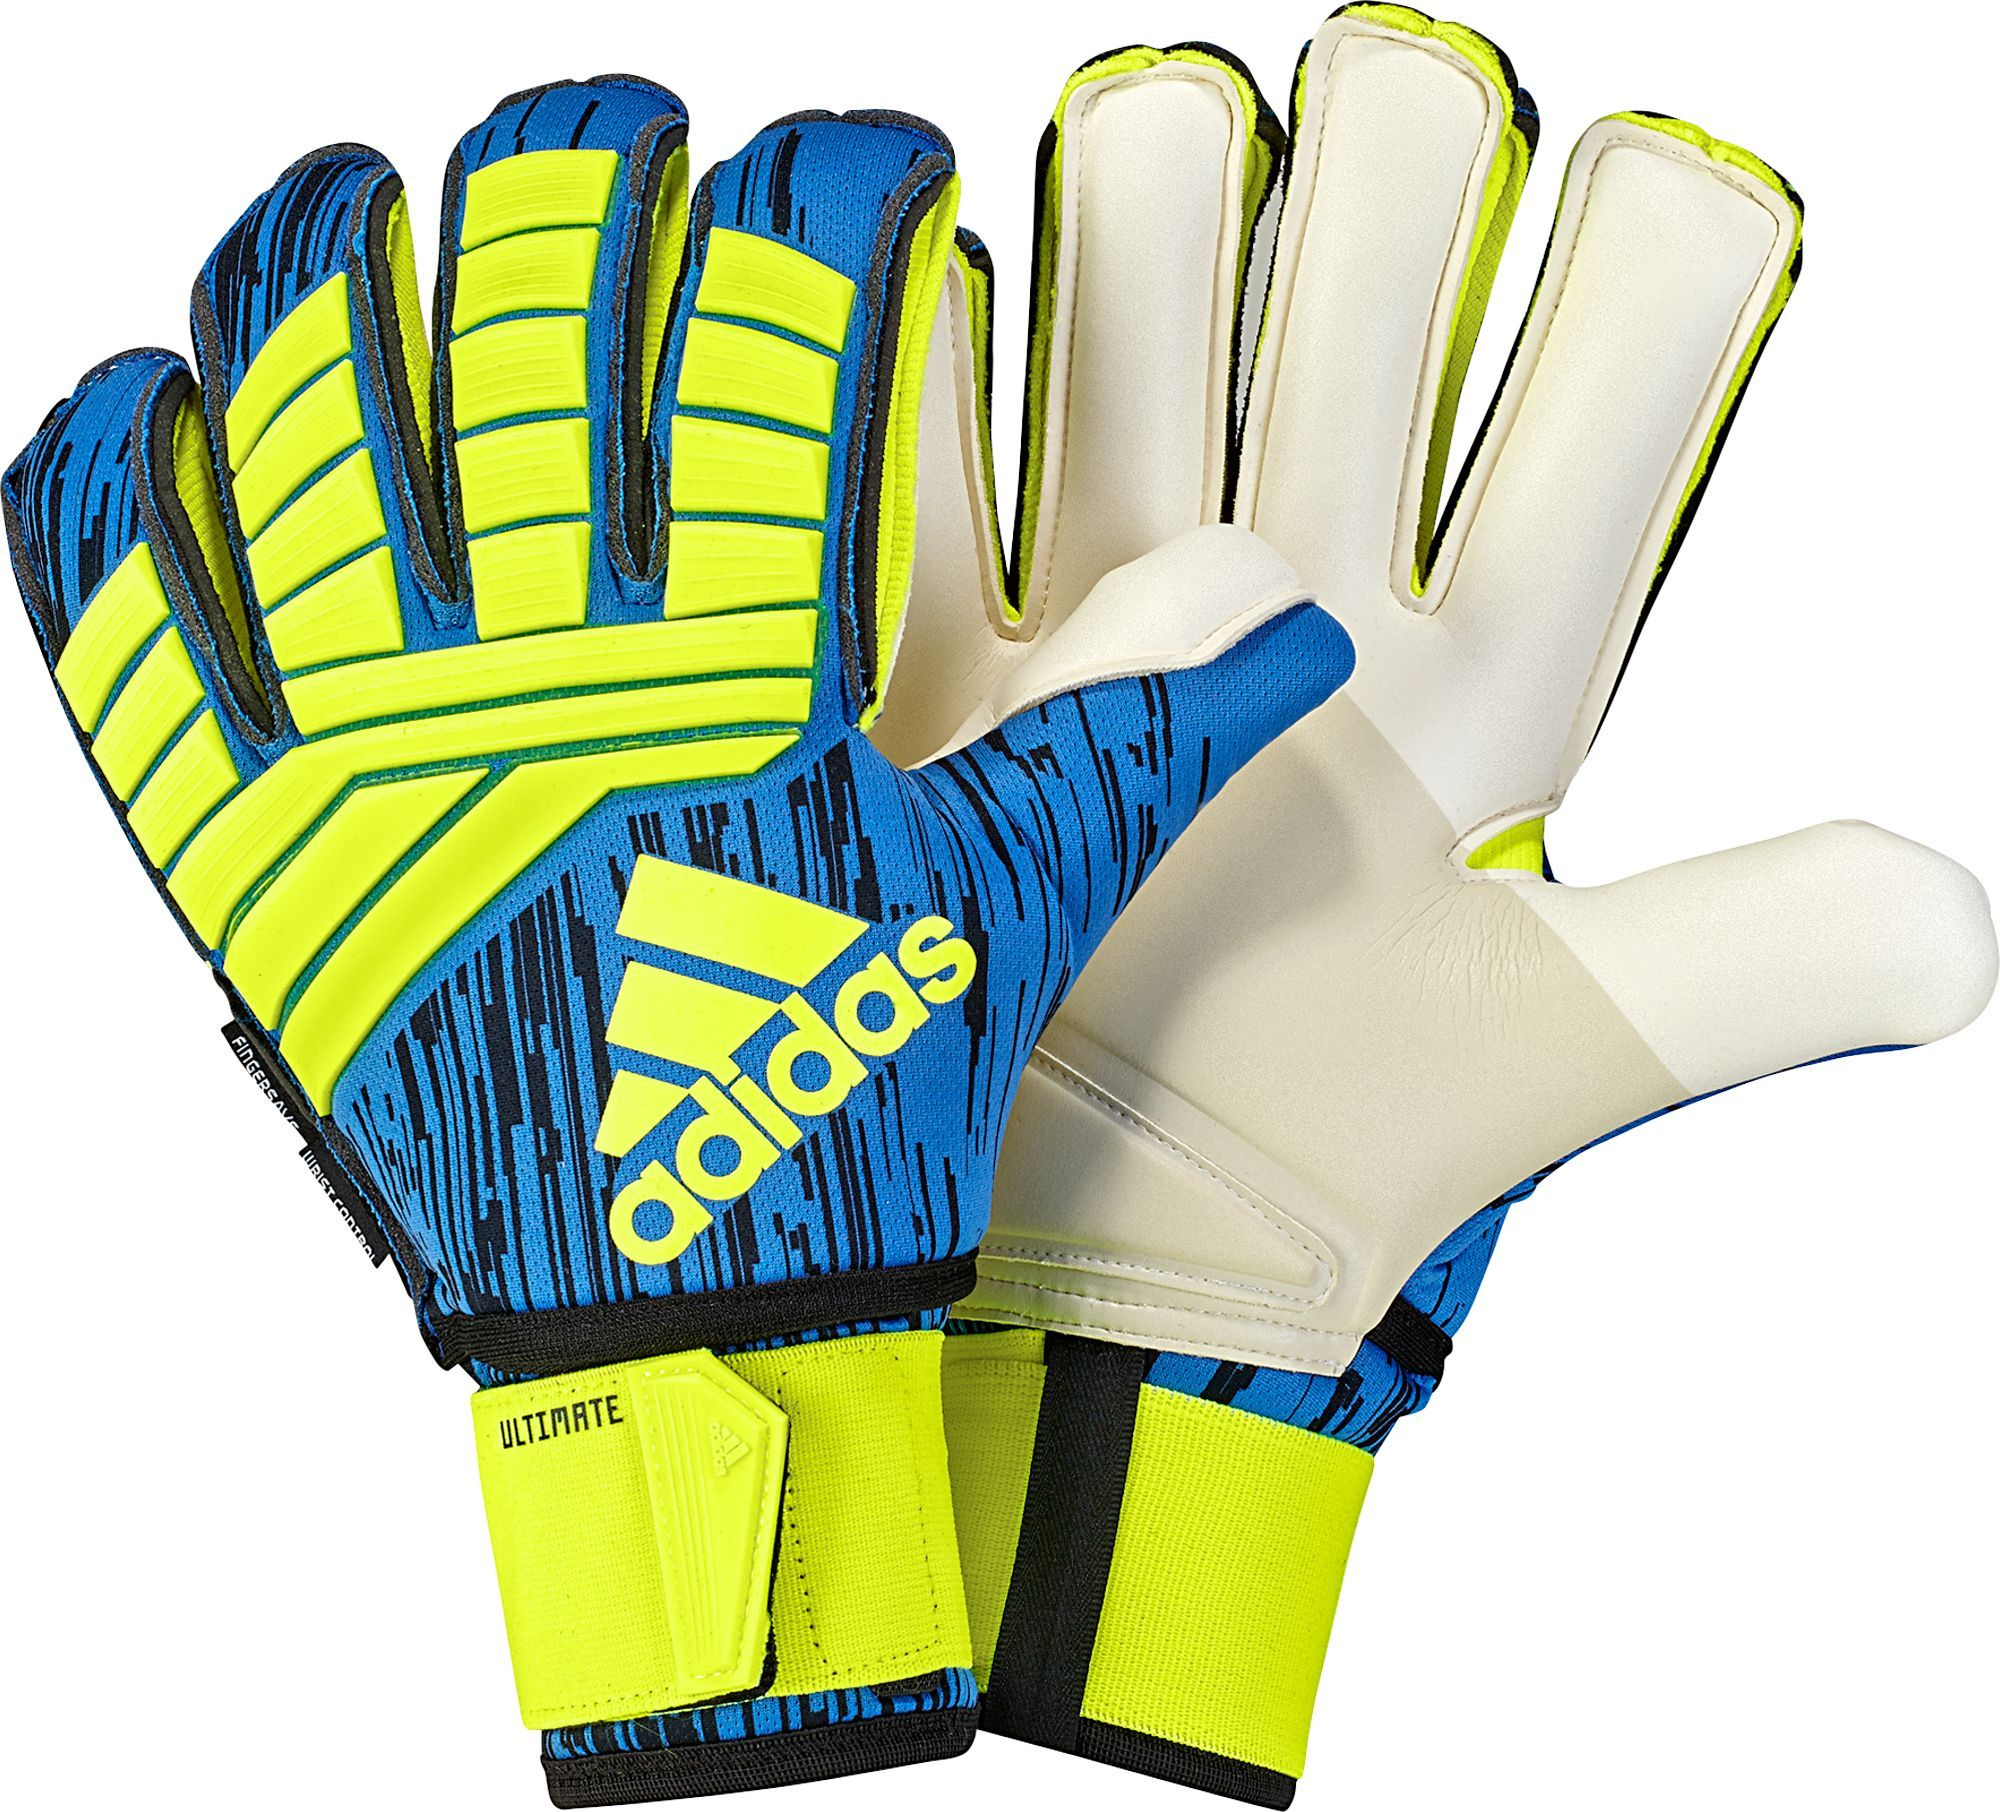 f3026e475fa adidas Adult Predator Ultimate Soccer Goalkeeper Gloves, Yellow/Black/Blue